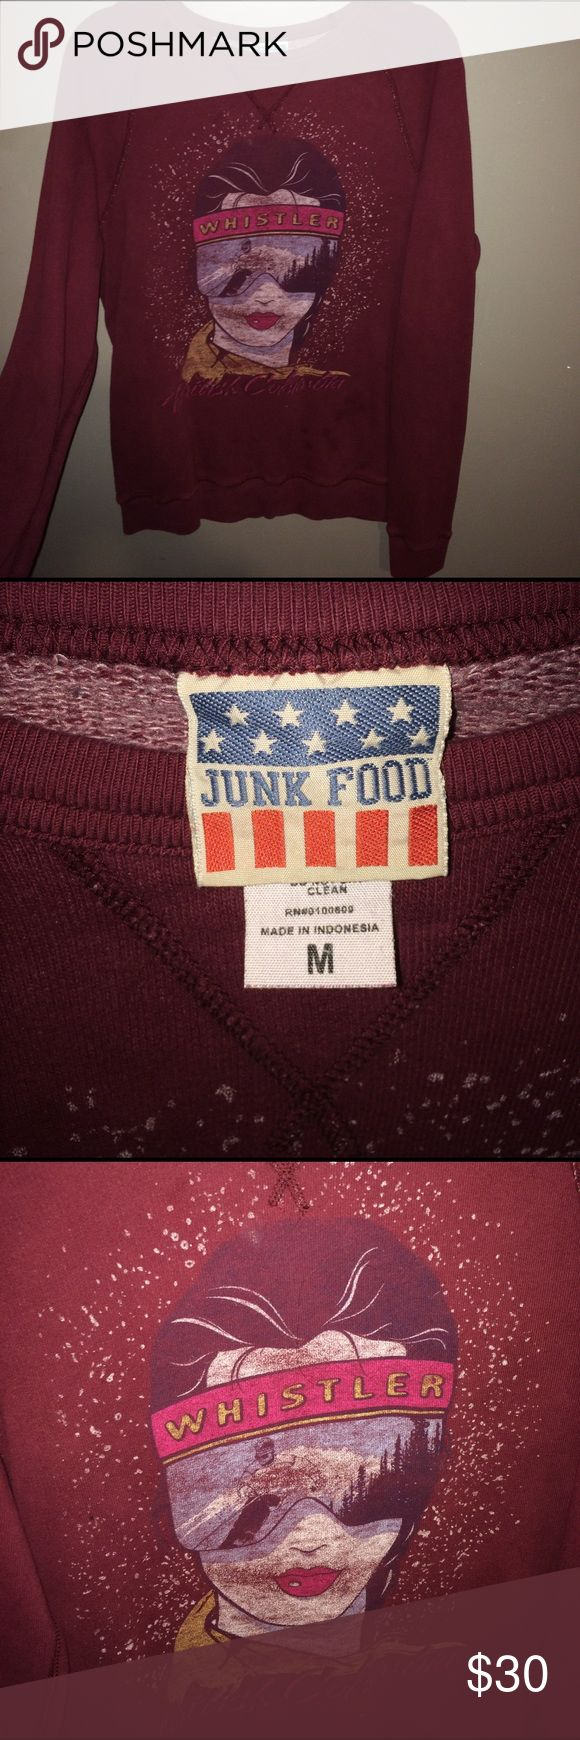 Junk Food Graphic Crewneck Junk Food graphic crewneck! Whistler British Columbia. Burgundy and oversized. Long at the bottom and perfect for any style and can be used as a crewneck dress if you are short like me! Junk Food Clothing Sweaters Crew & Scoop Necks